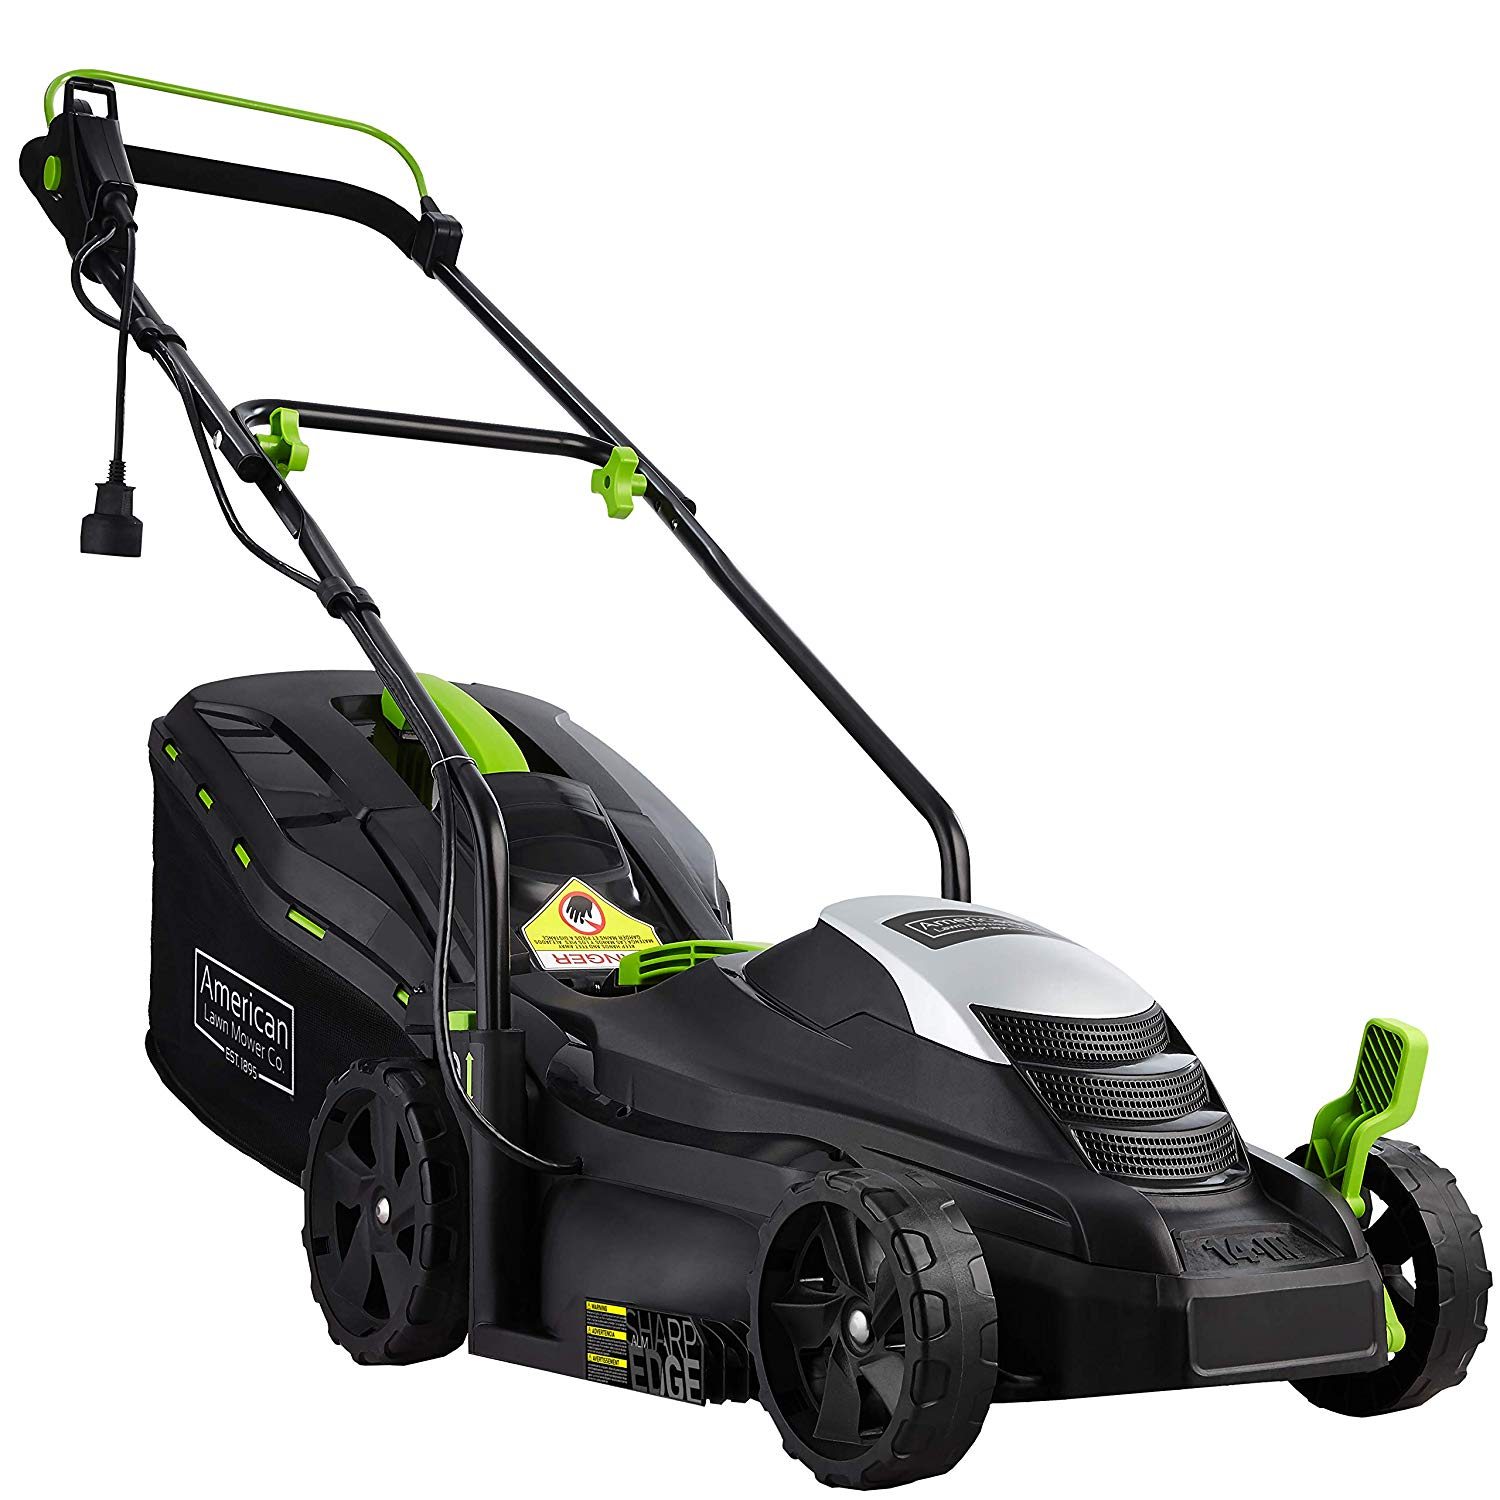 11-Amp Corded Electric Lawn Mower By American Lawn Mower Company